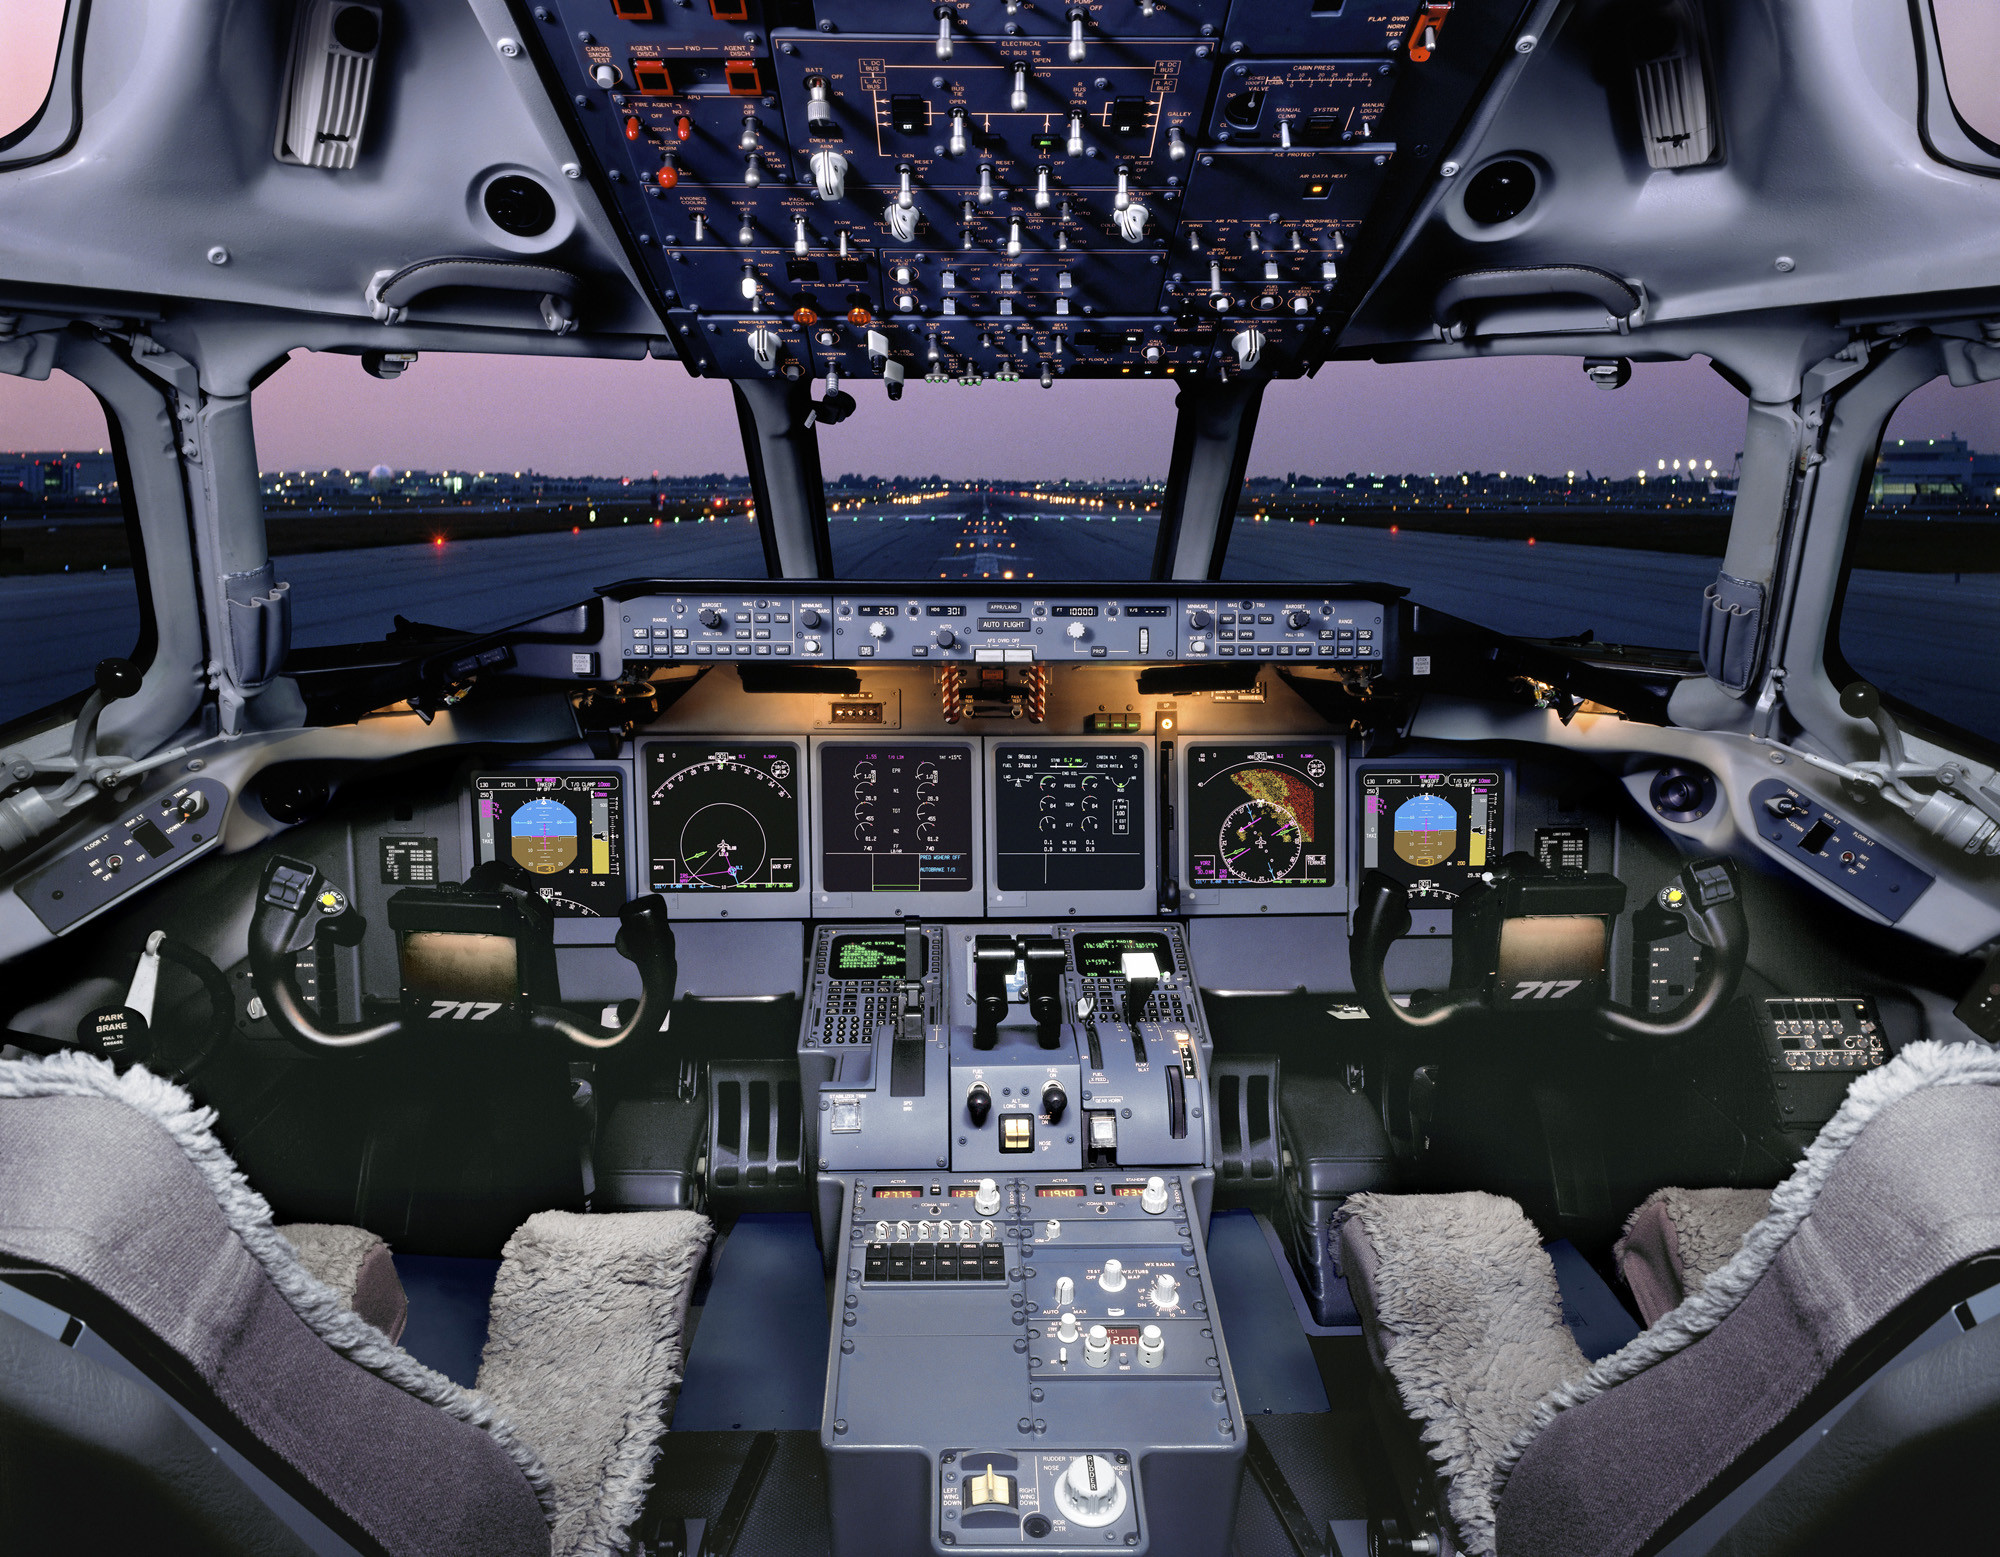 Iphone X Inside View Wallpaper Boeing 787 Cockpit Wallpaper 61 Images